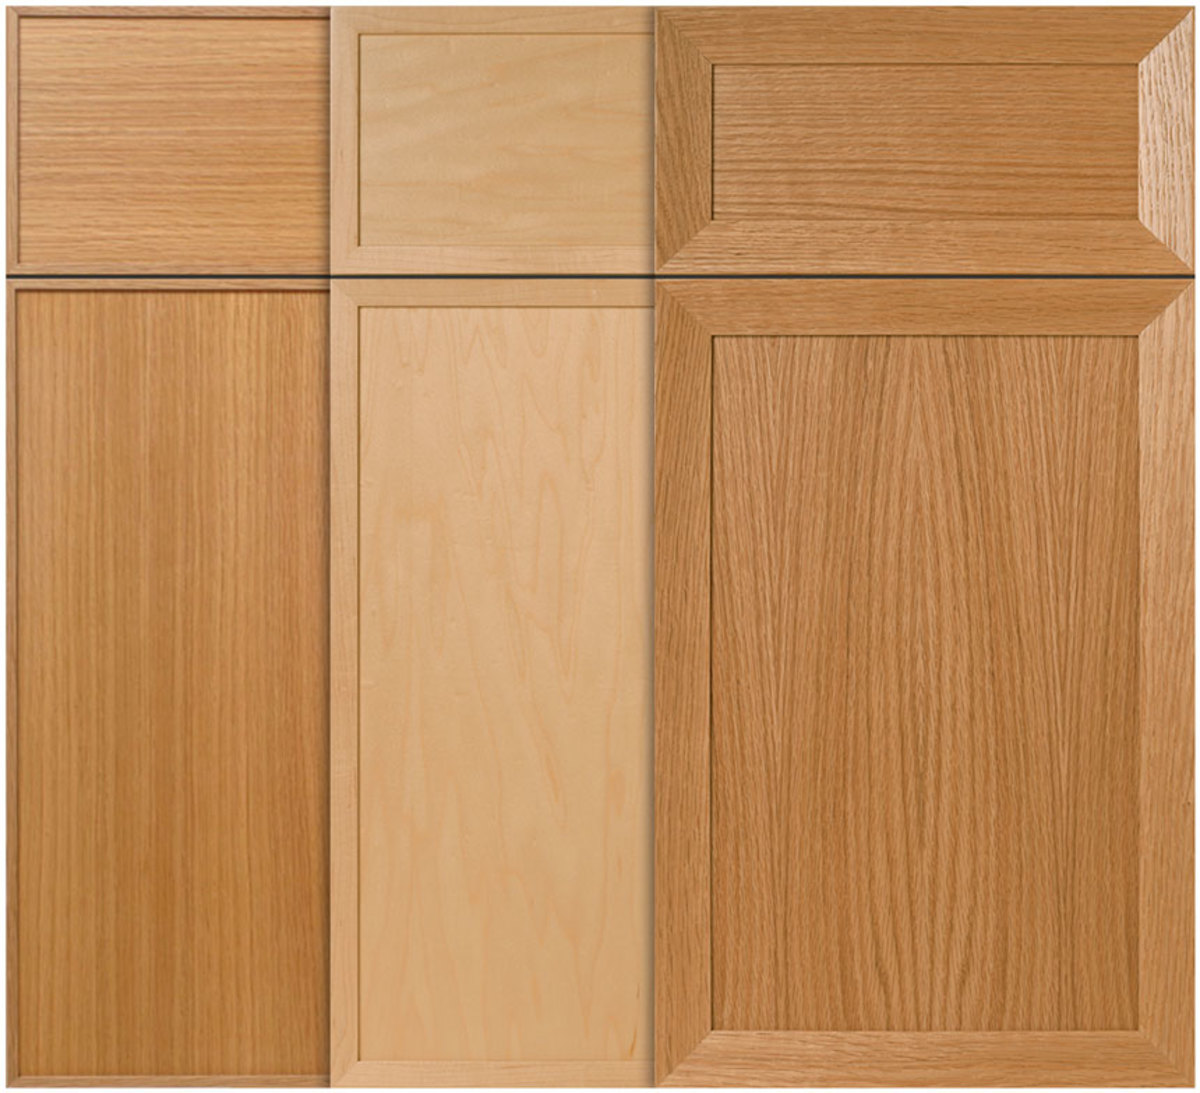 WalzCraft---NPR-66---Slab-Doors-with-Edge